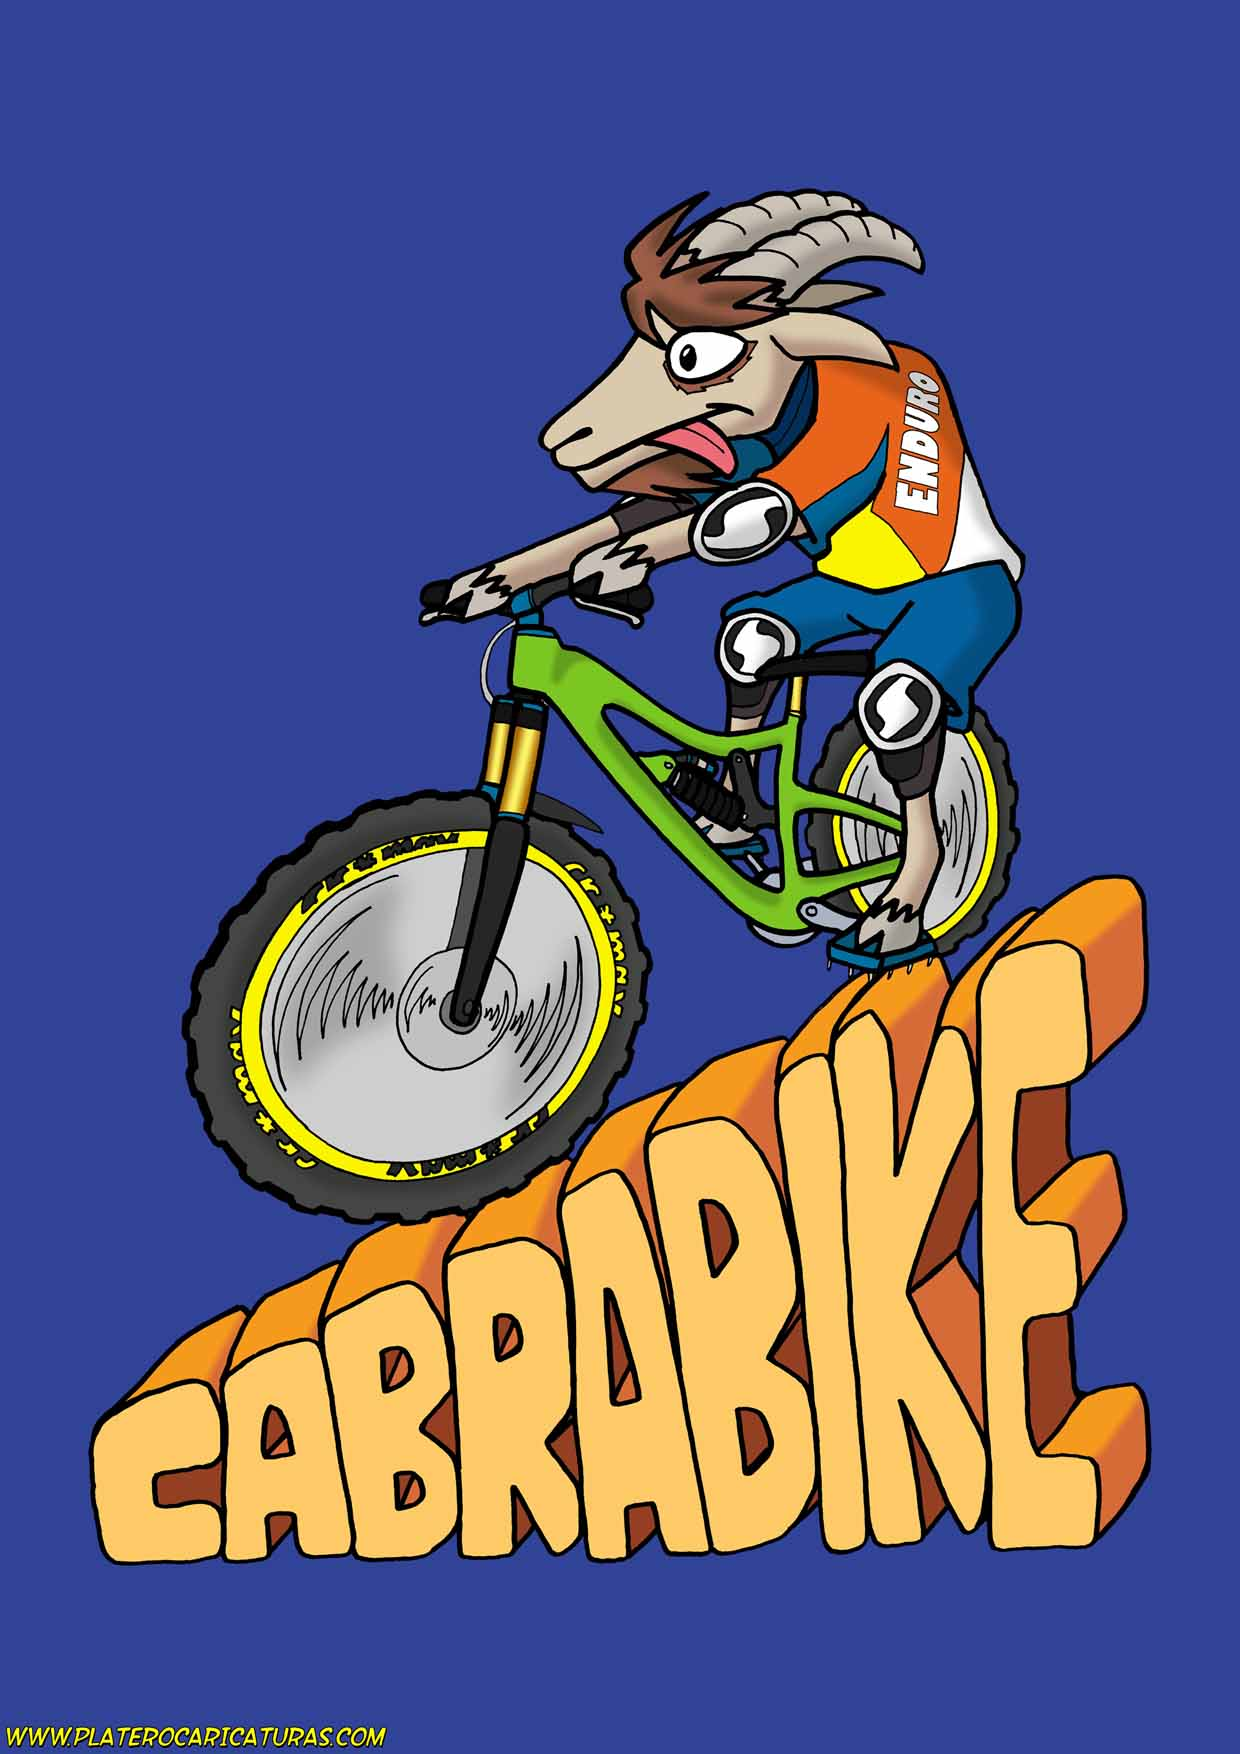 caricaturas a color por encargo personalizadas_logotipo mountain bike__plateroca